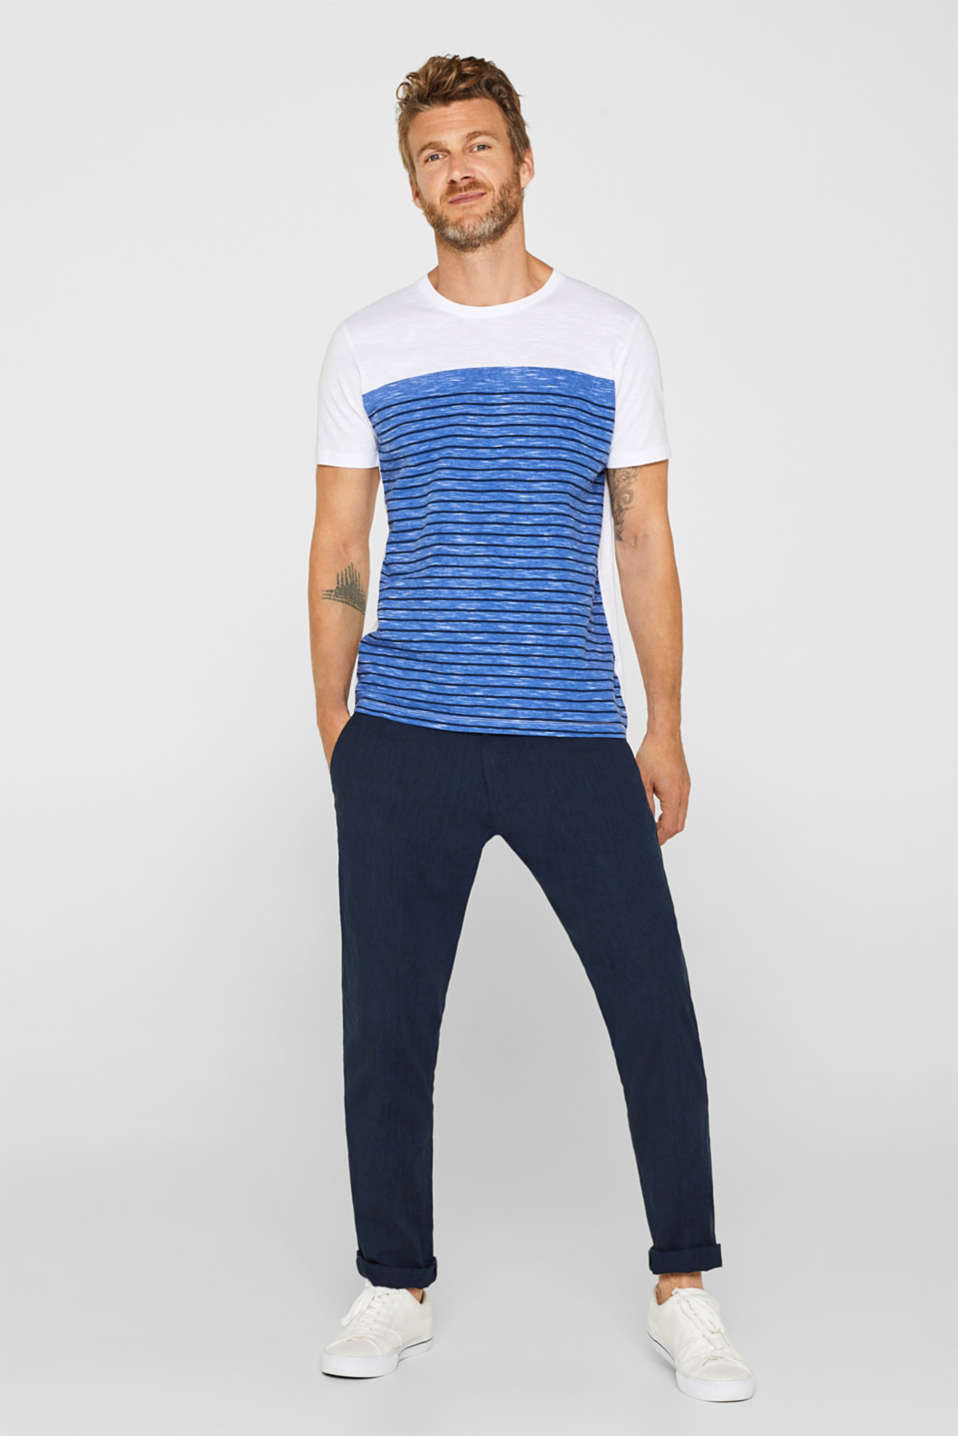 Jersey T-shirt with stripes, 100% cotton, NAVY, detail image number 2